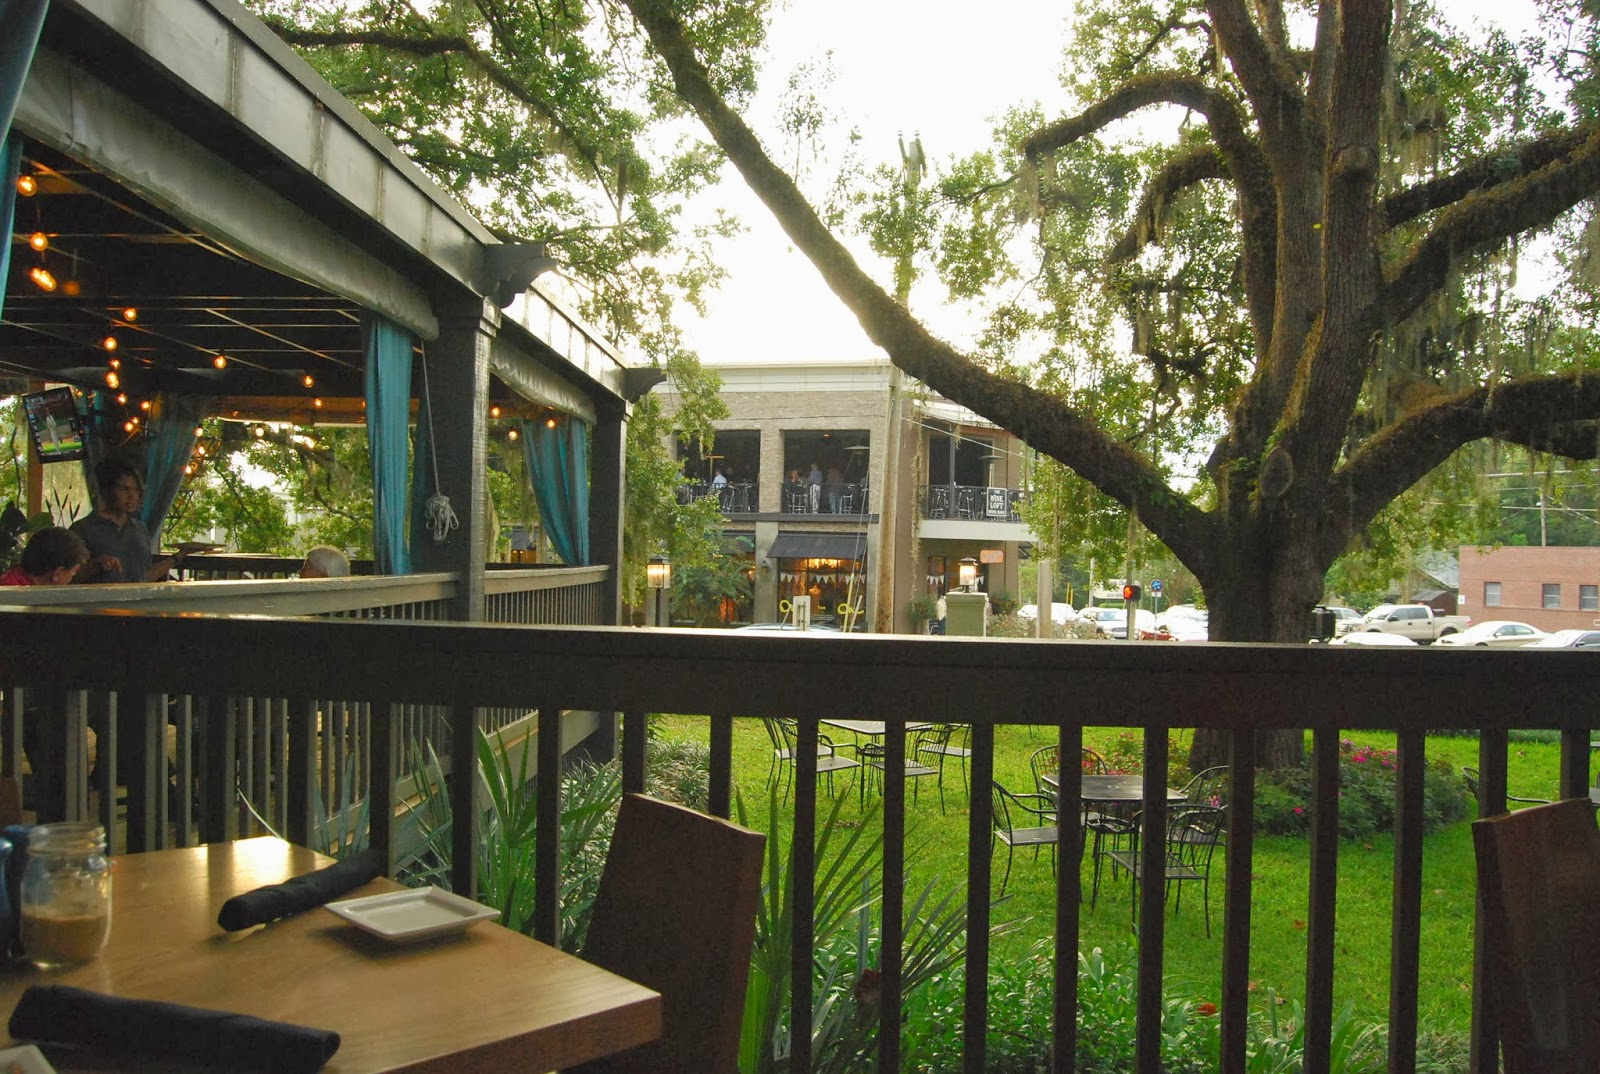 On the porch of the front porch restaurant tallahassee fla